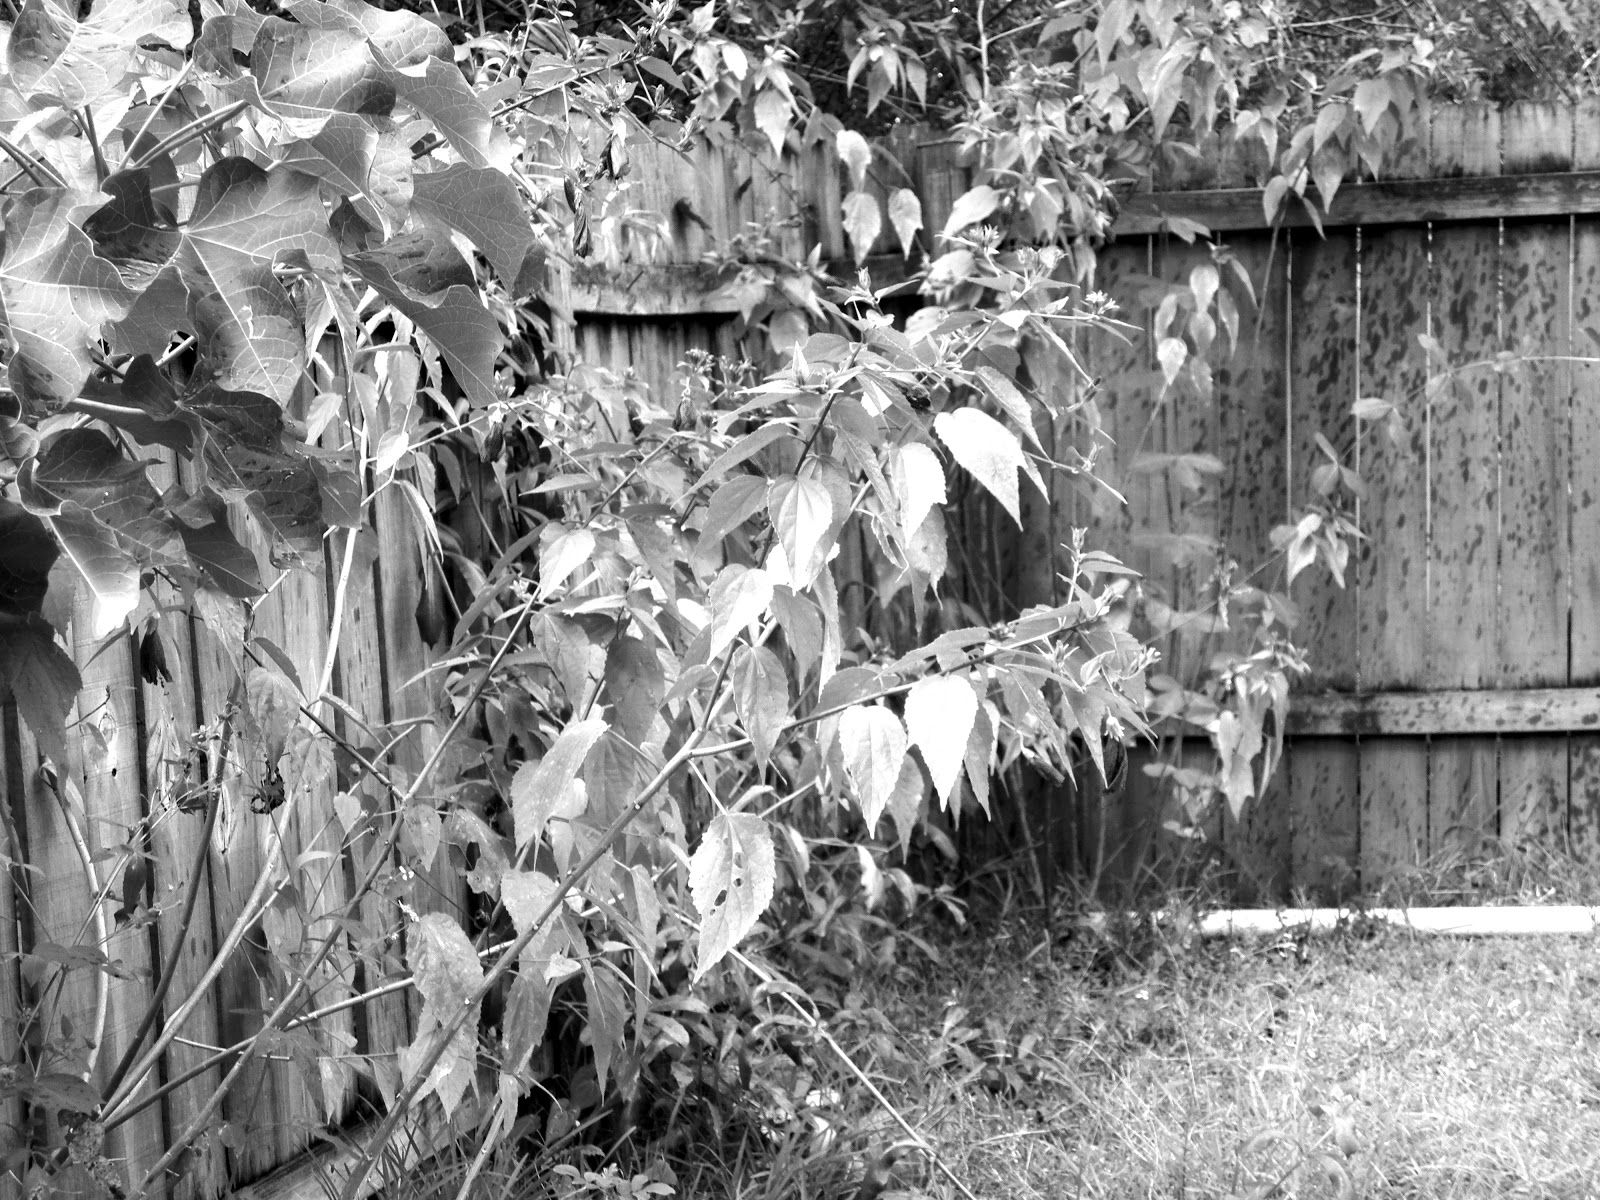 Practice taking some photographs for conversion to black and white when youve finished use photo editing software to convert the images from color to